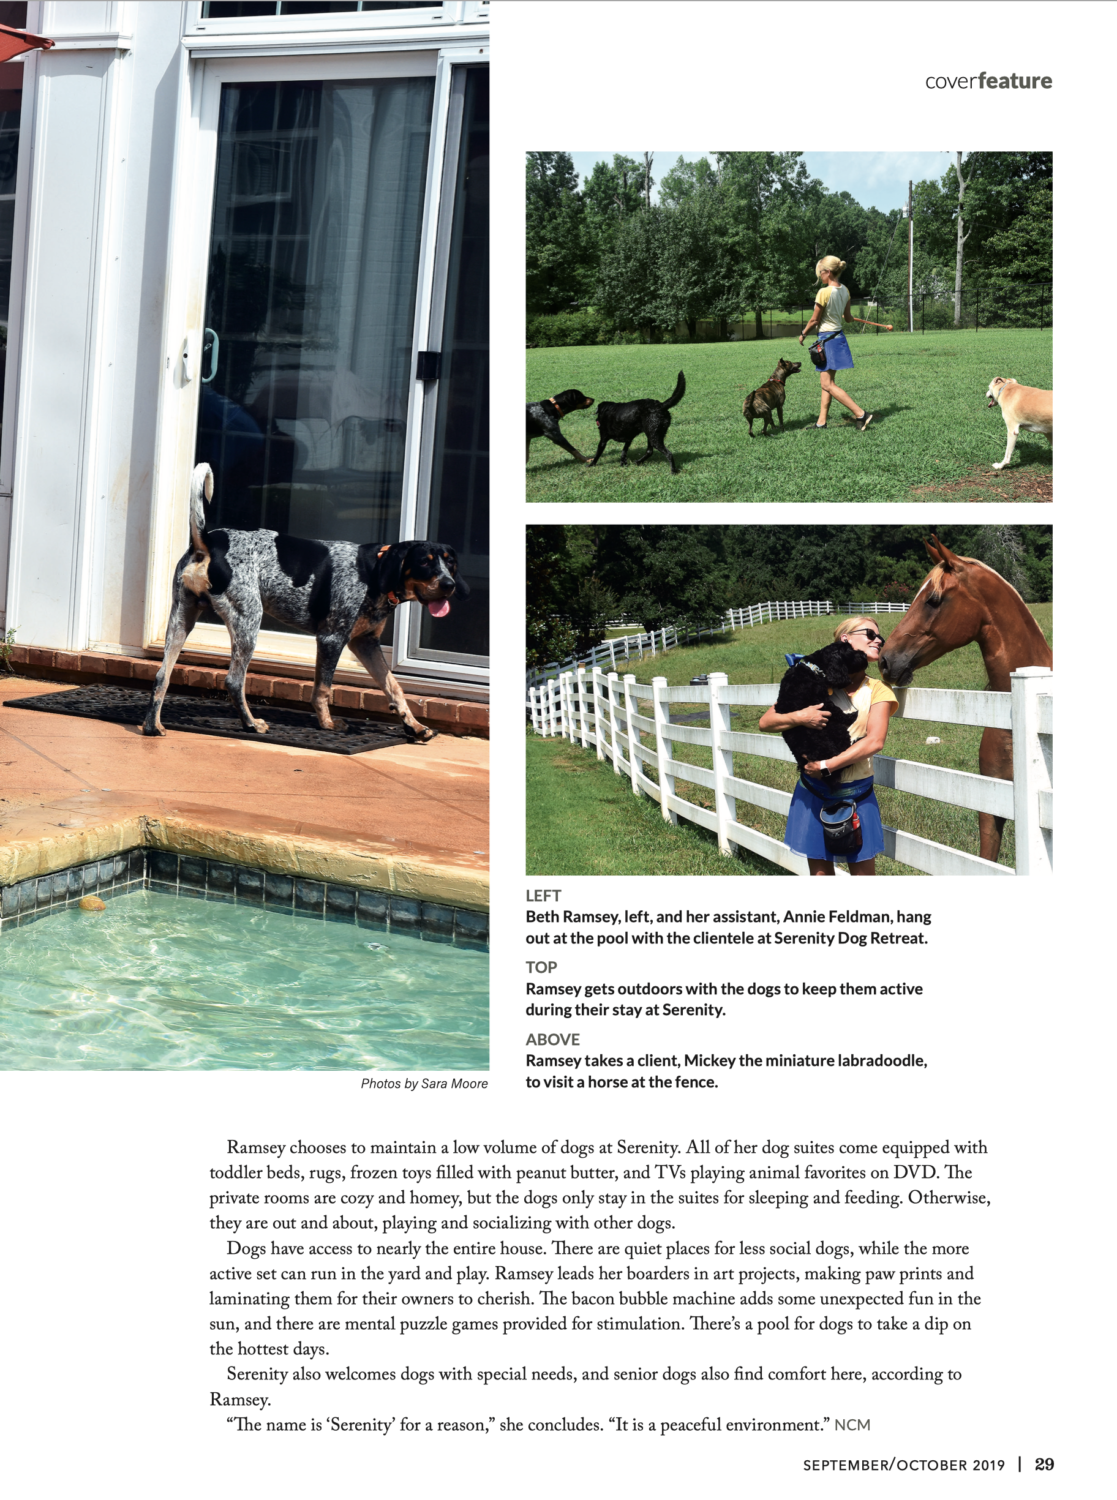 Newnan Coweta Magazine Article spotlights Serenity Dog Retreat with a three page article showcasing photos of our property.